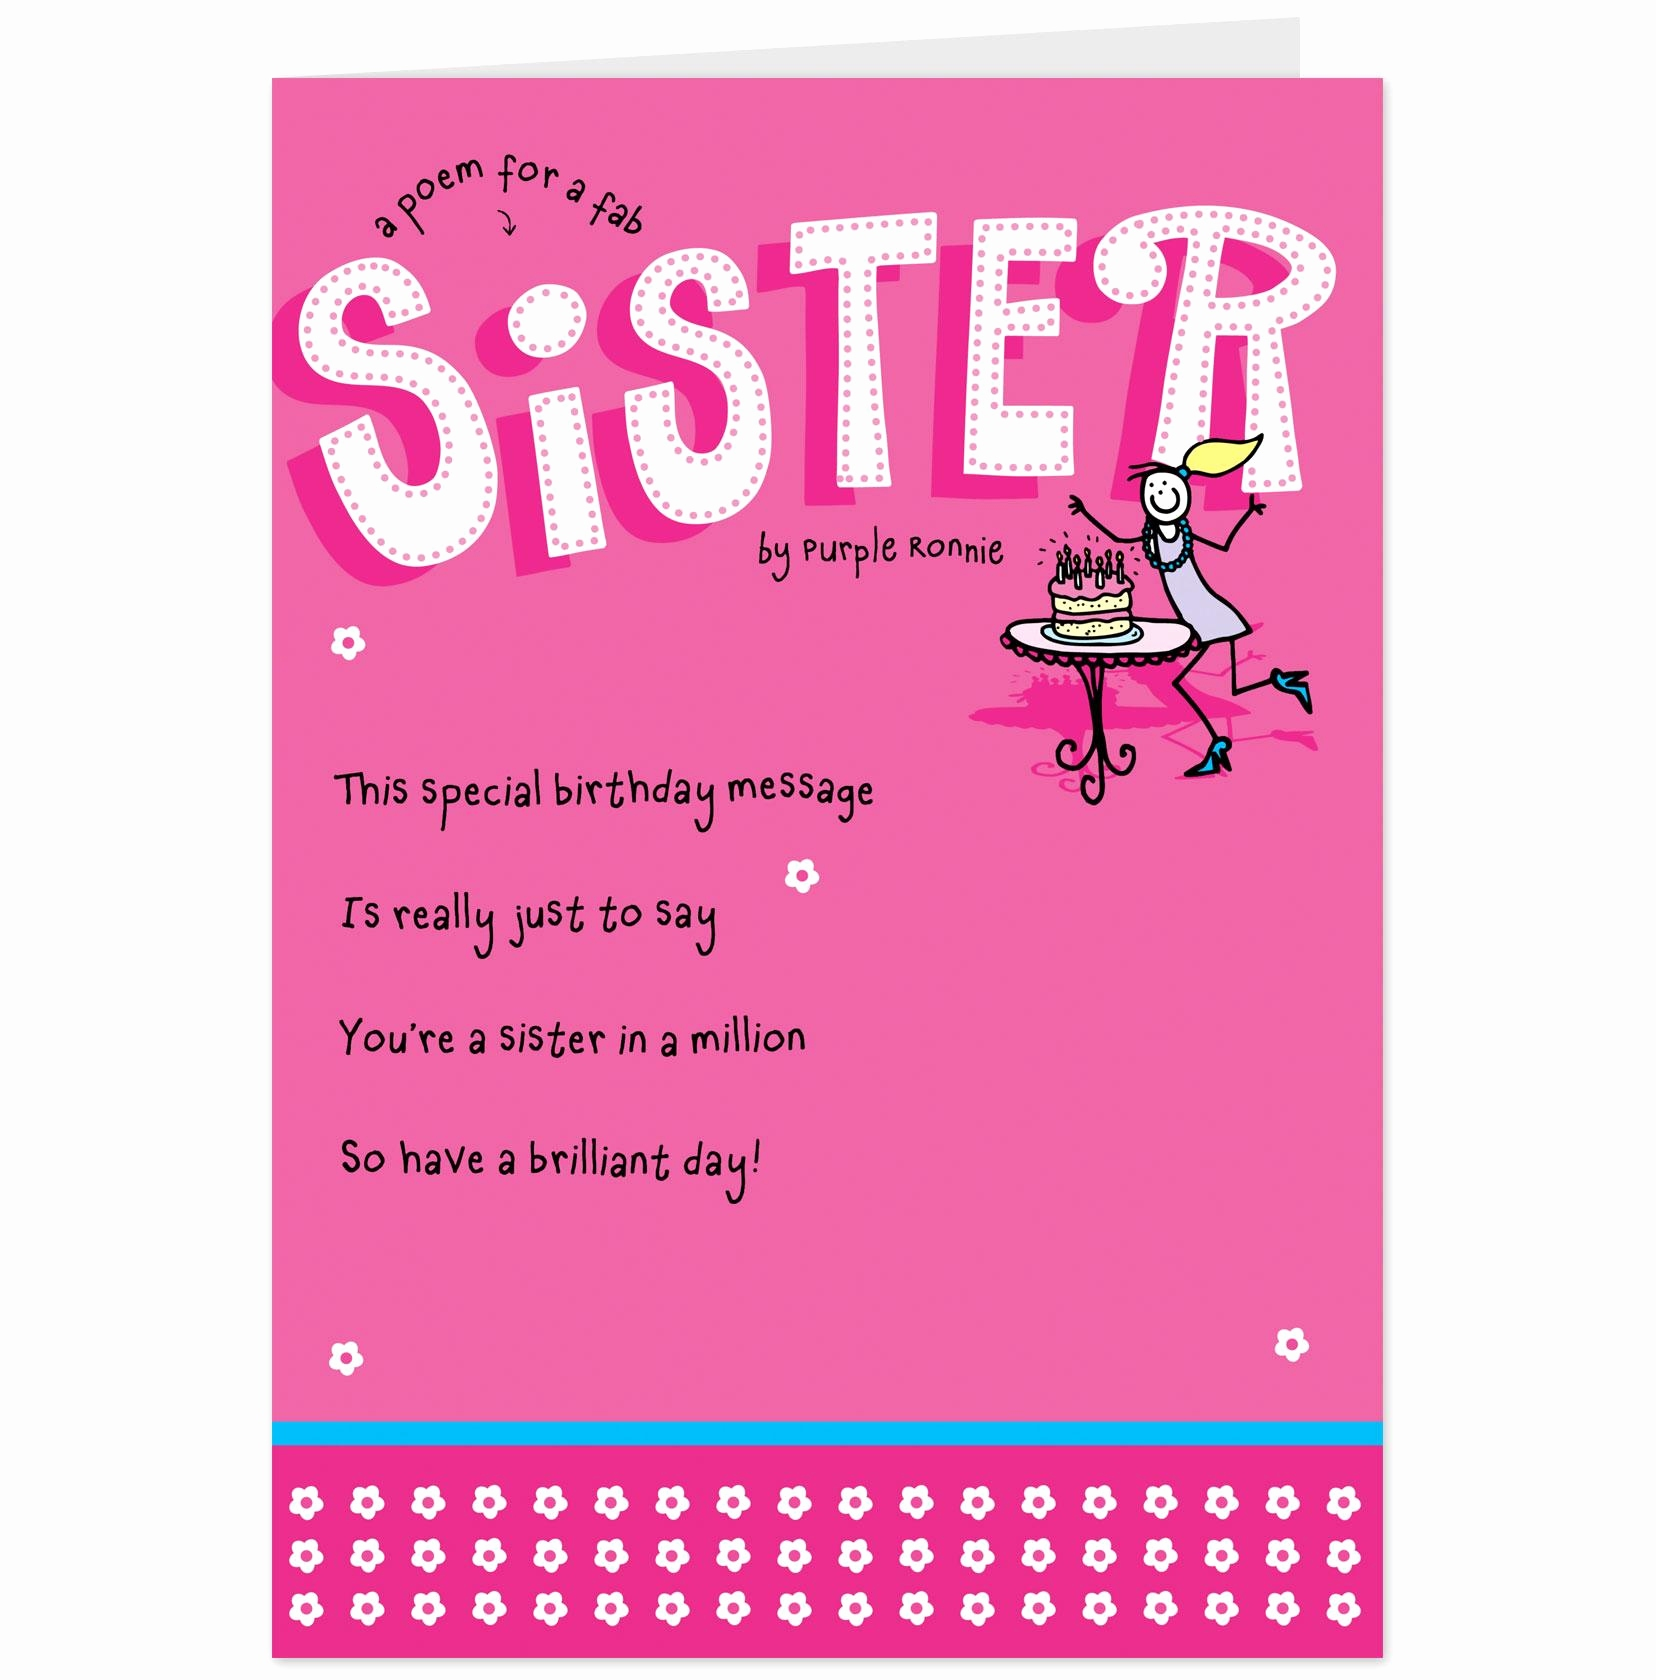 birthday poem for coworker ; free-christian-ecards-birthday-cards-lovely-happy-birthday-linda-brothers-amp-sisters-pinterest-of-free-christian-ecards-birthday-cards